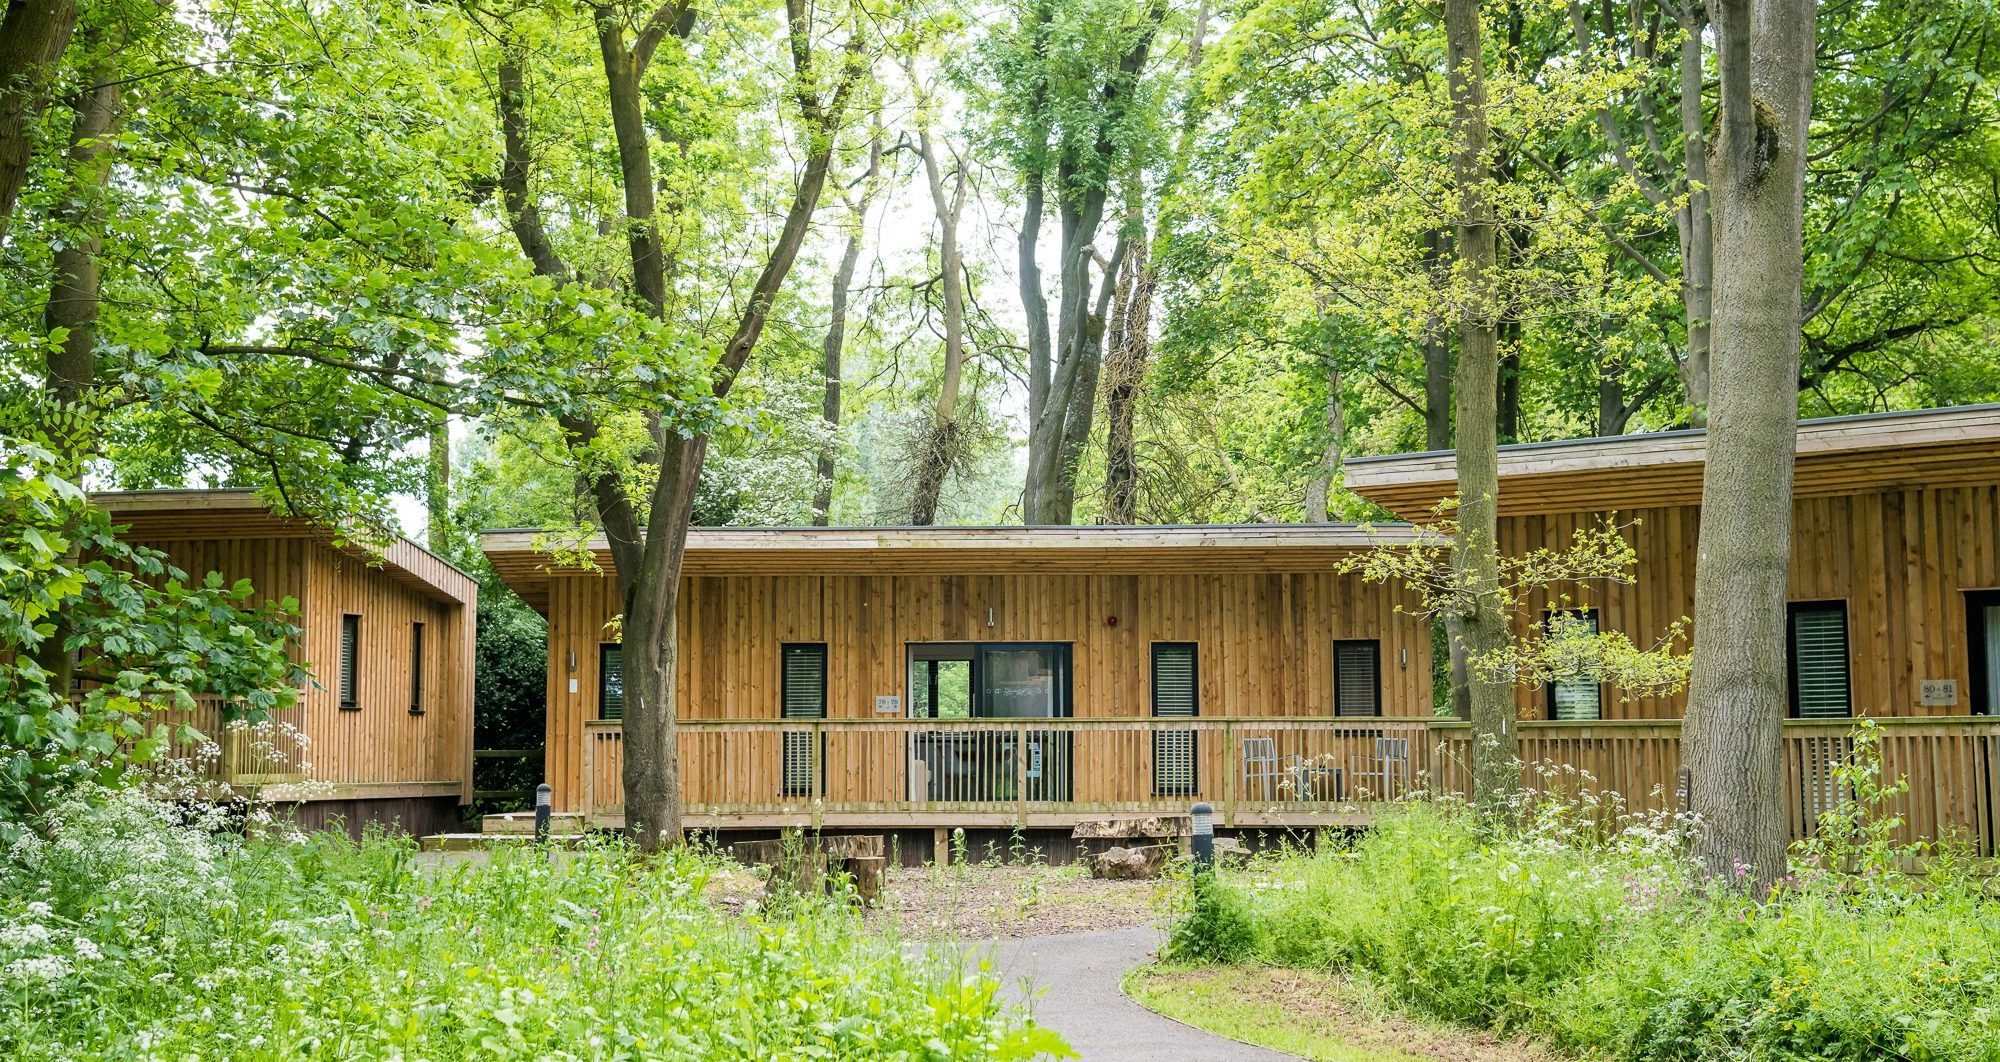 The Woodlands accommodation